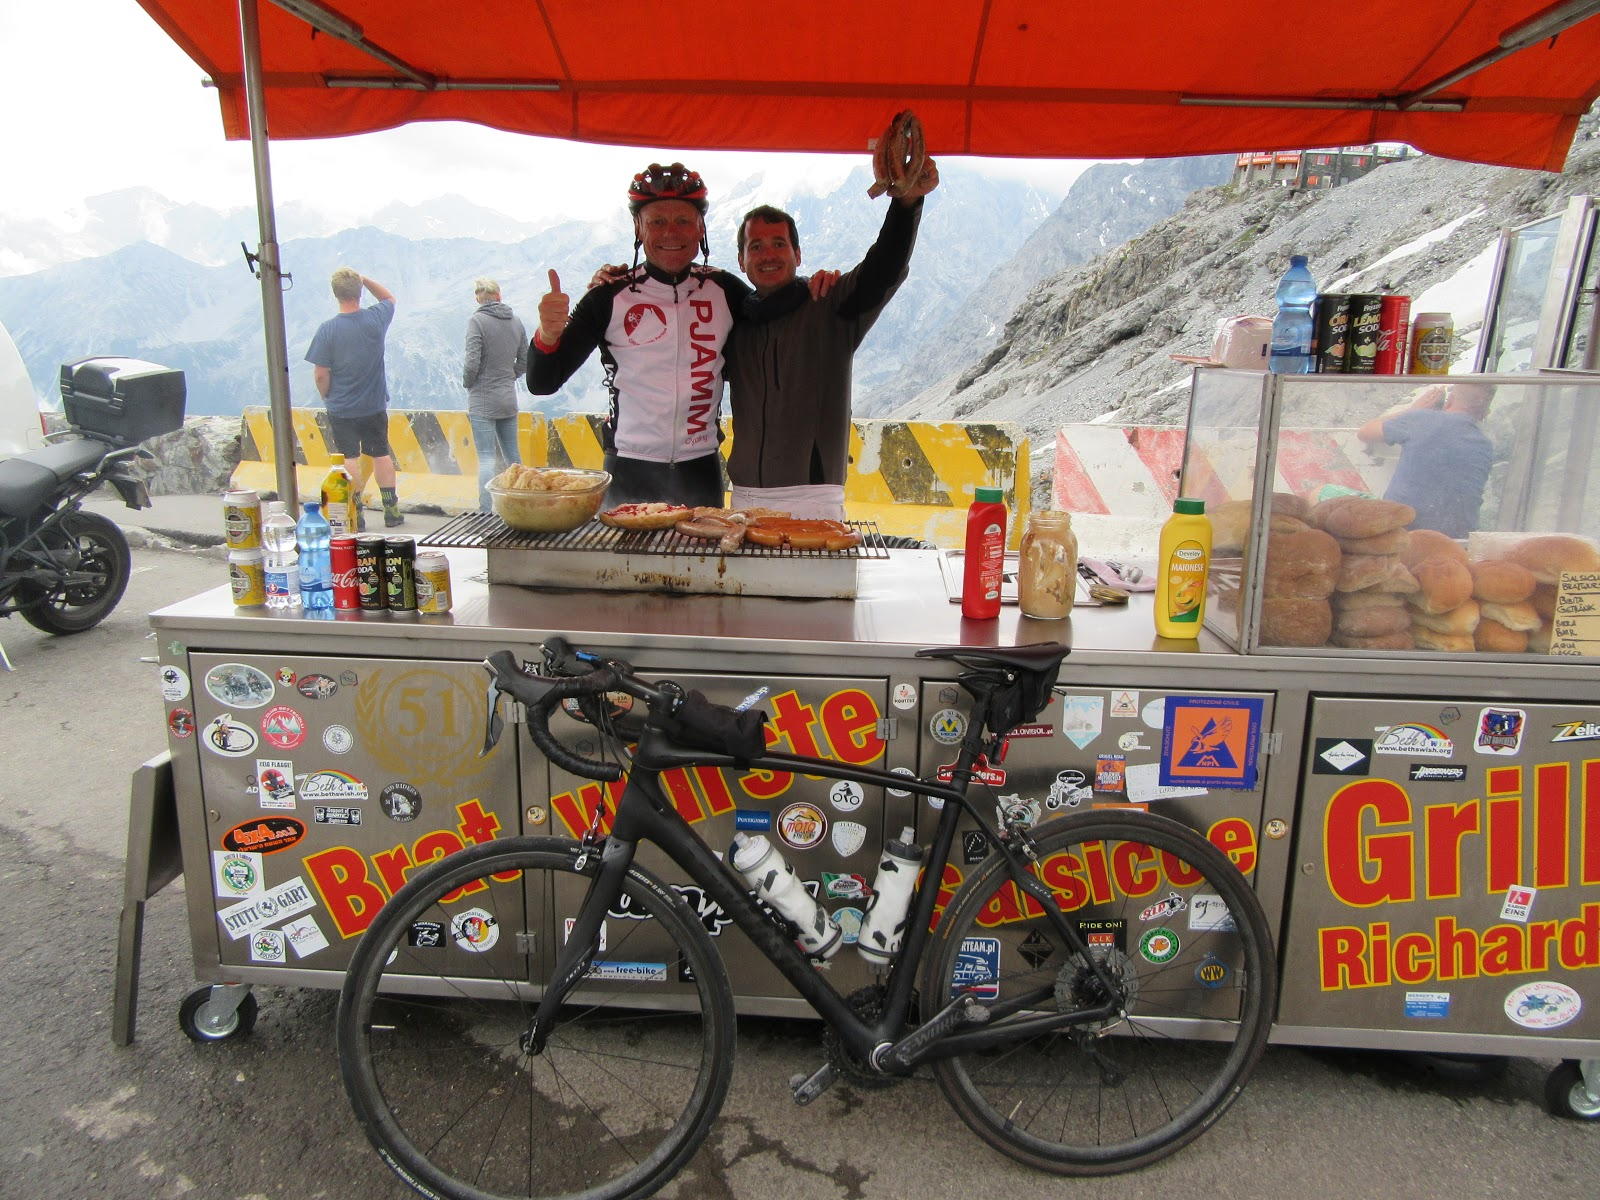 Umbrail Pass bike climb - bratwurst and food cart at passo dello stelvio with cyclist, bike and cook